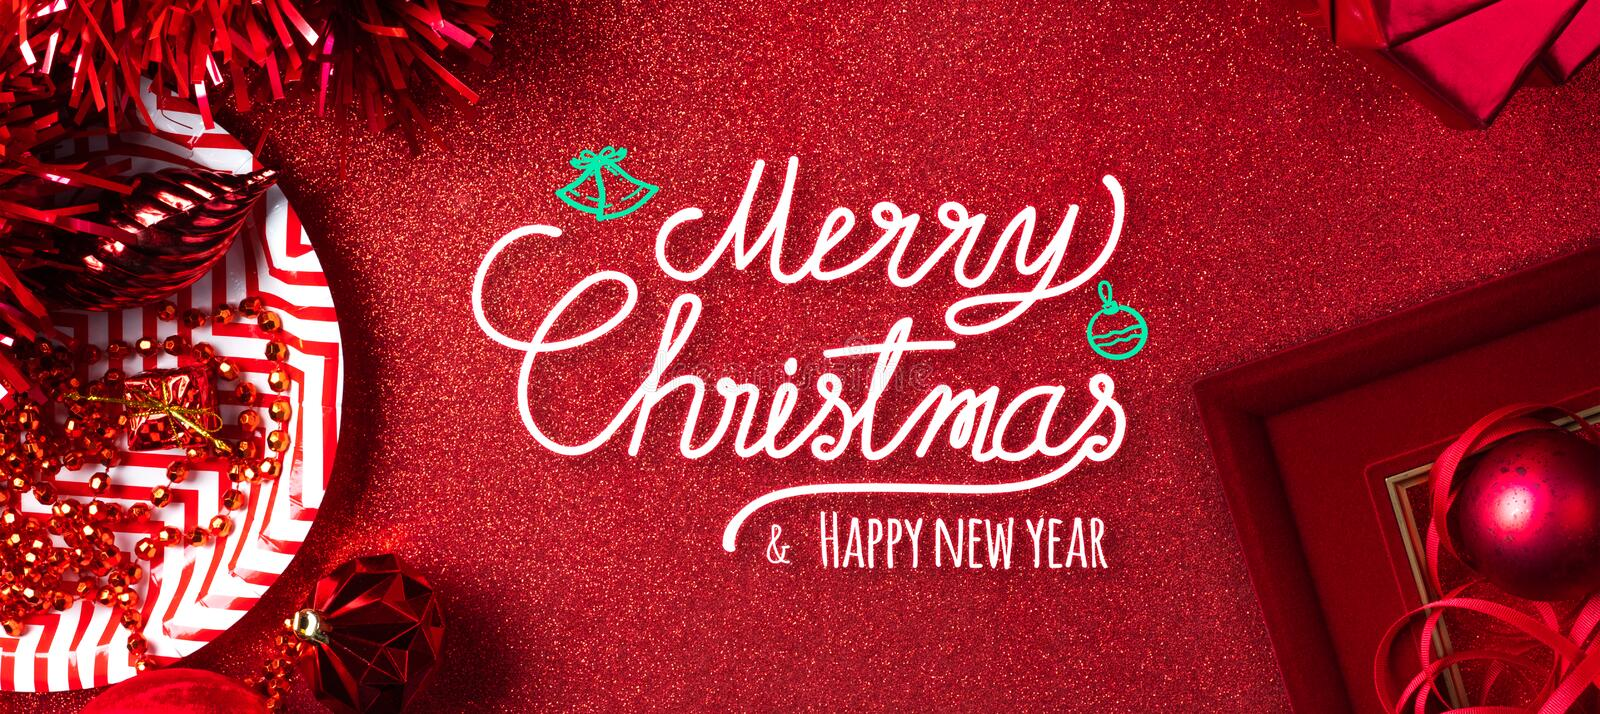 Merry christmas and happy new year red text background.top view of tinsel,gift box,ball,ribbon decorate on sparkling table.holiday royalty free stock photos